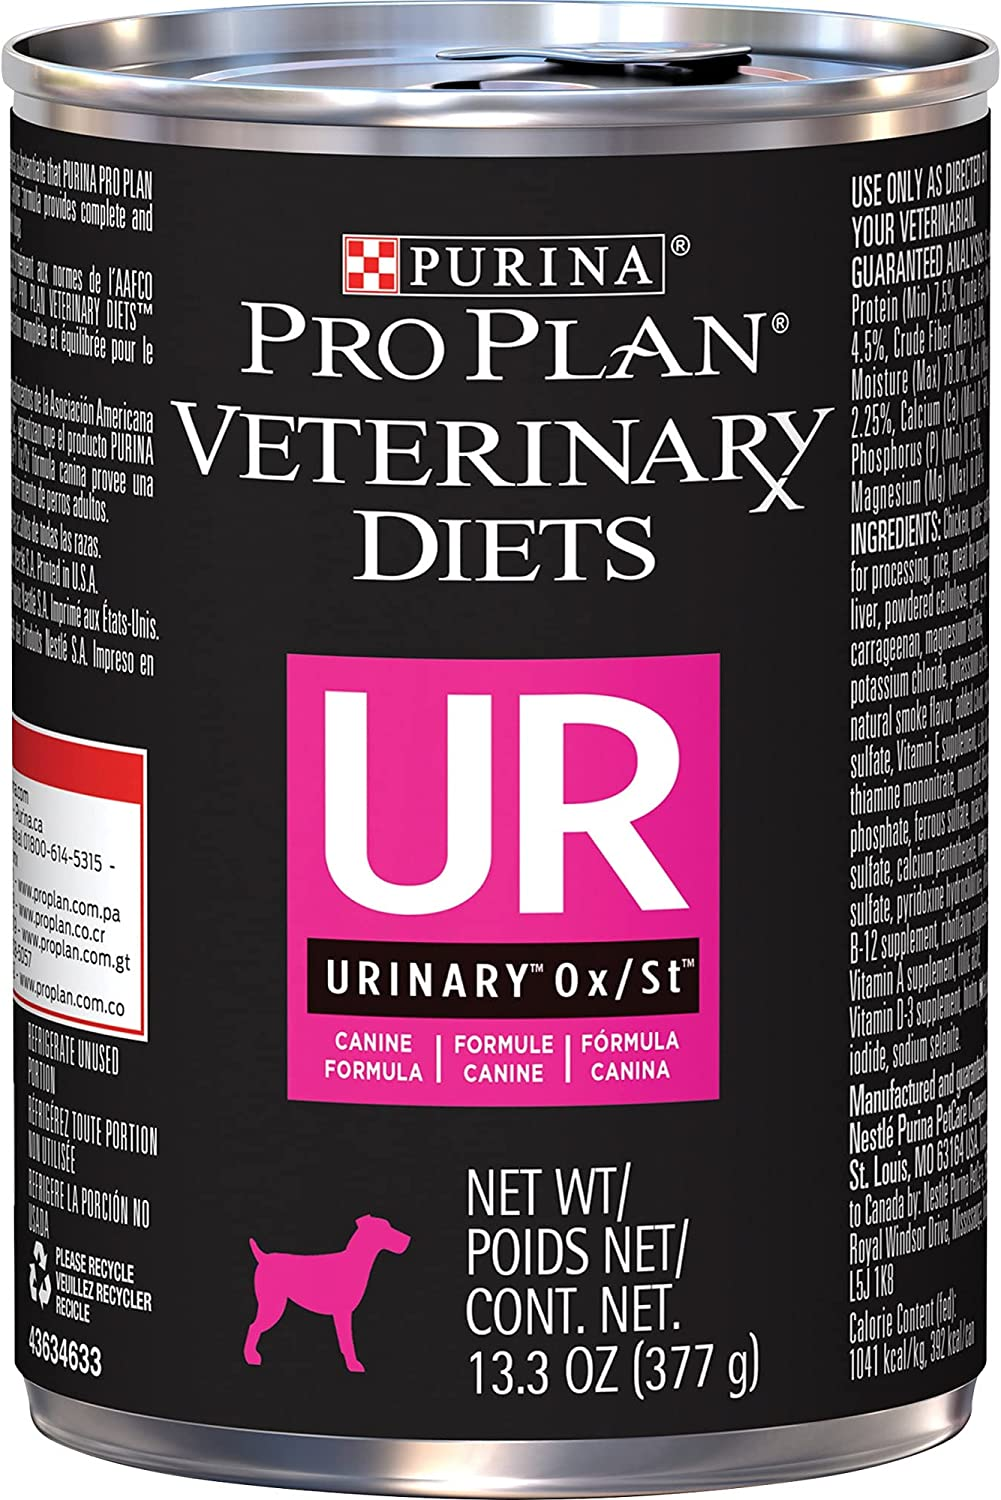 Purina Pro Plan Veterinary Diets UR Urinary Ox/St Canine Formula Wet Dog Food, 13.3 oz., Case of 12, 12 X 13.3 OZ